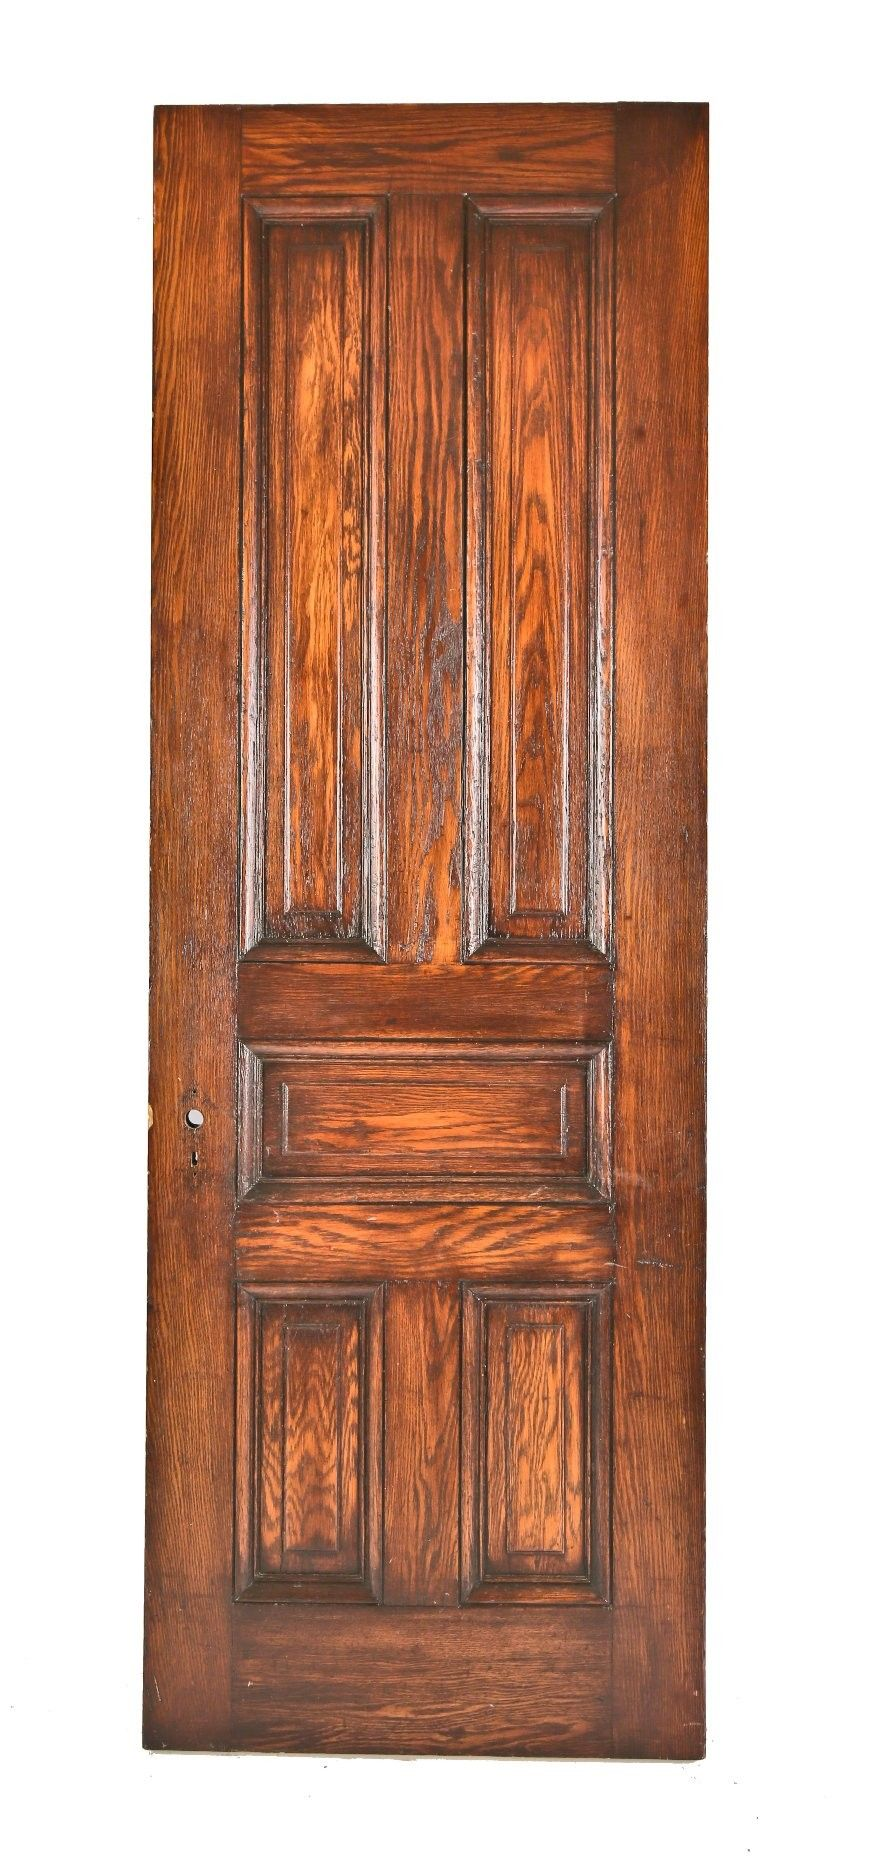 one of several matching original varnished oak wood interior residential passage doors salvaged from an 1880u0027s chicago mansion  sc 1 st  Pinterest & One of several matching original varnished oak wood interior ...